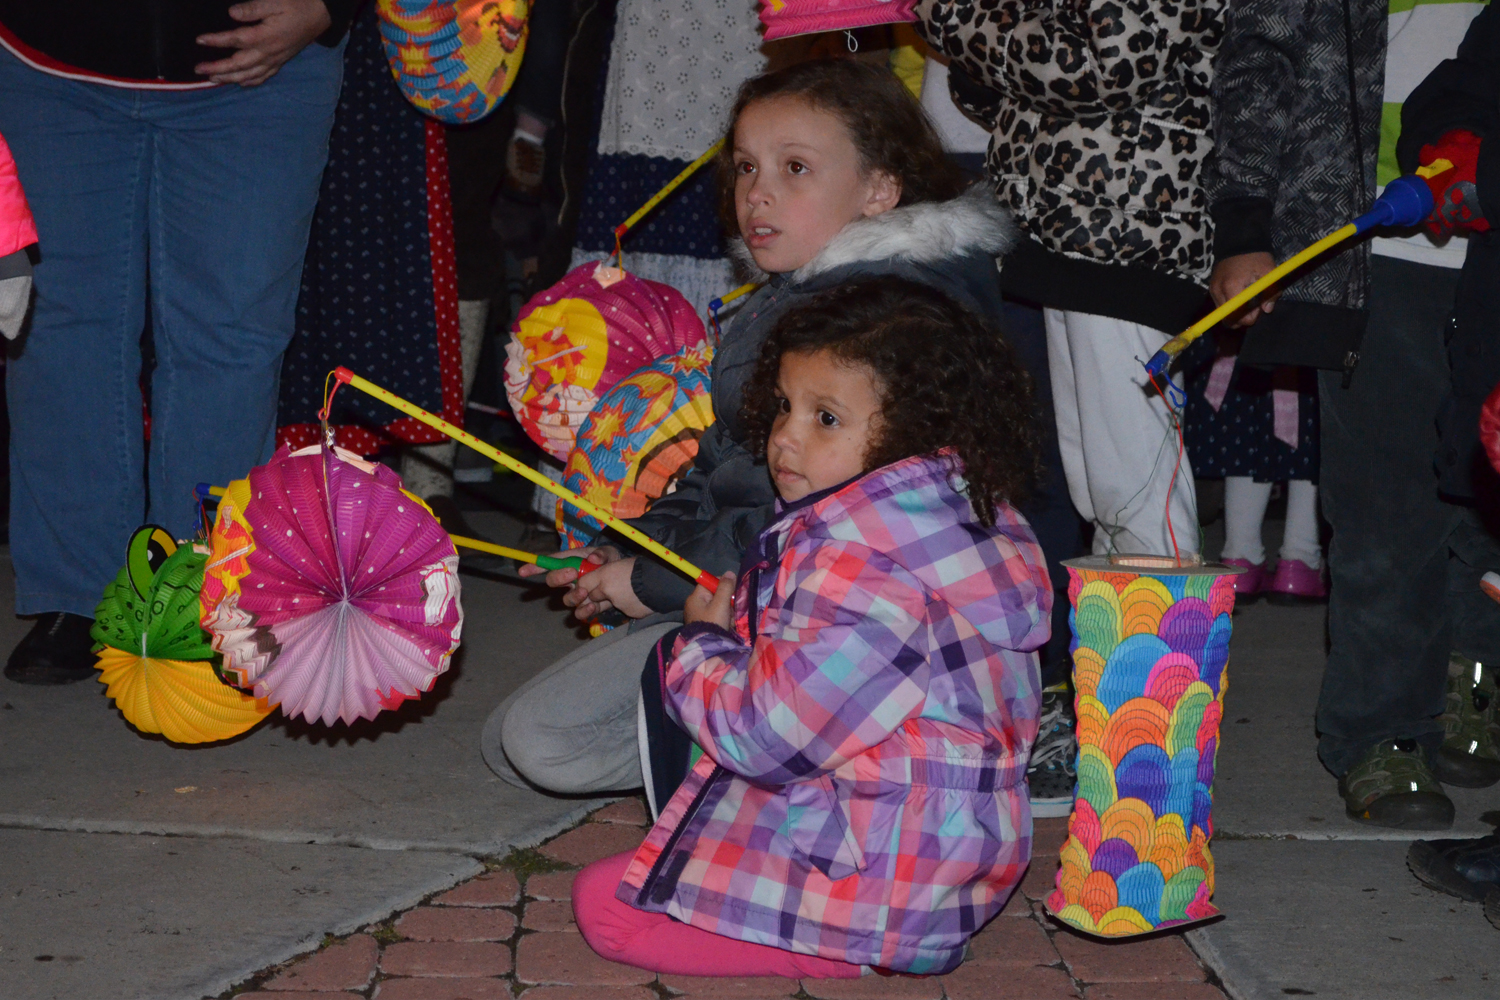 st-martins-lantern-parade-kids-with-lanterns.jpg